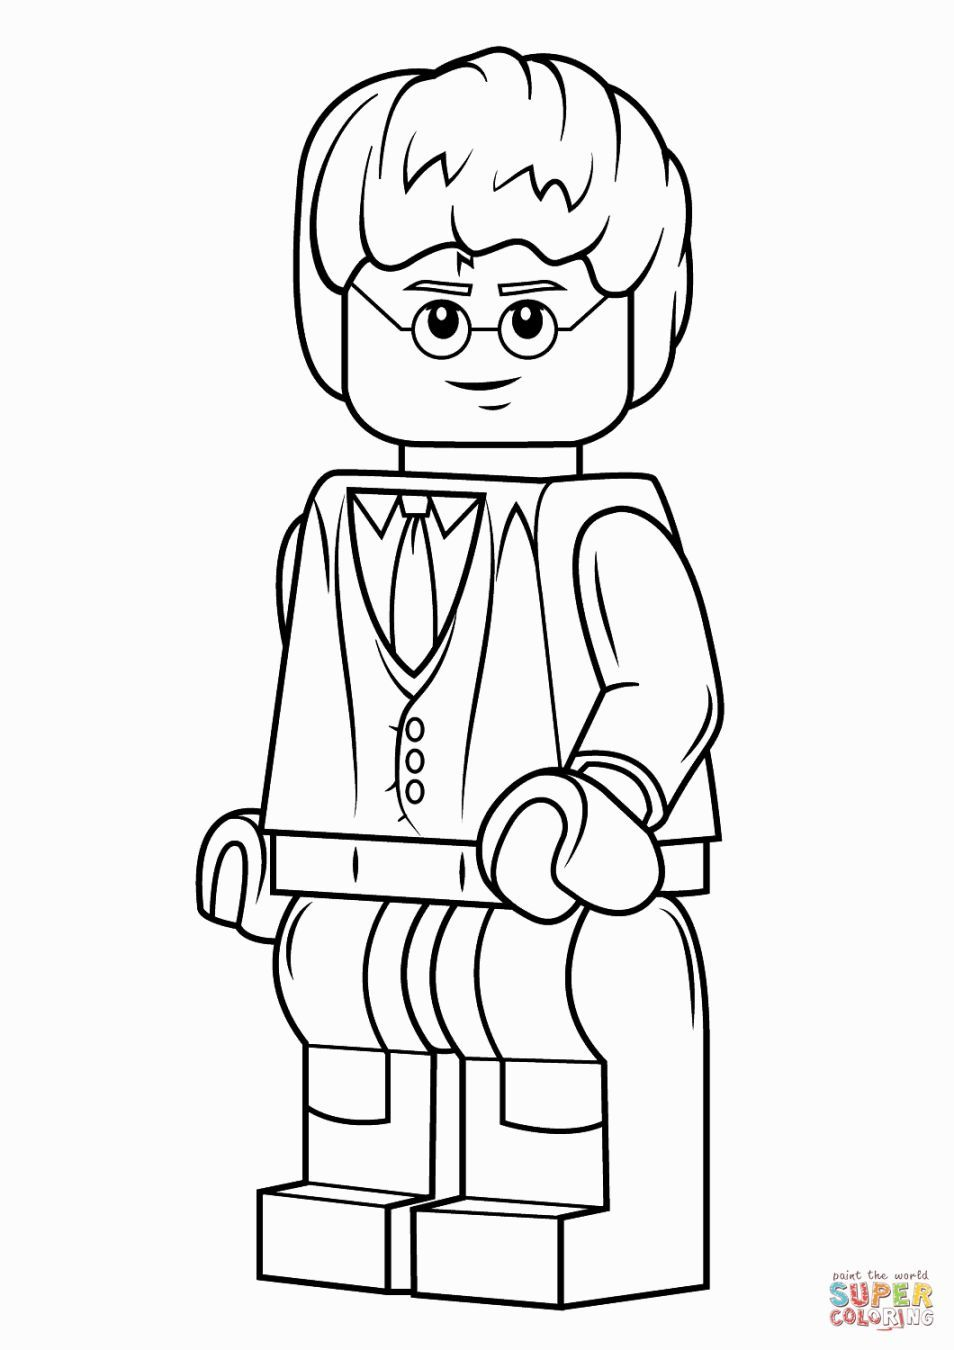 Lego Harry Potter Coloring Pages Harry Potter Coloring Pages